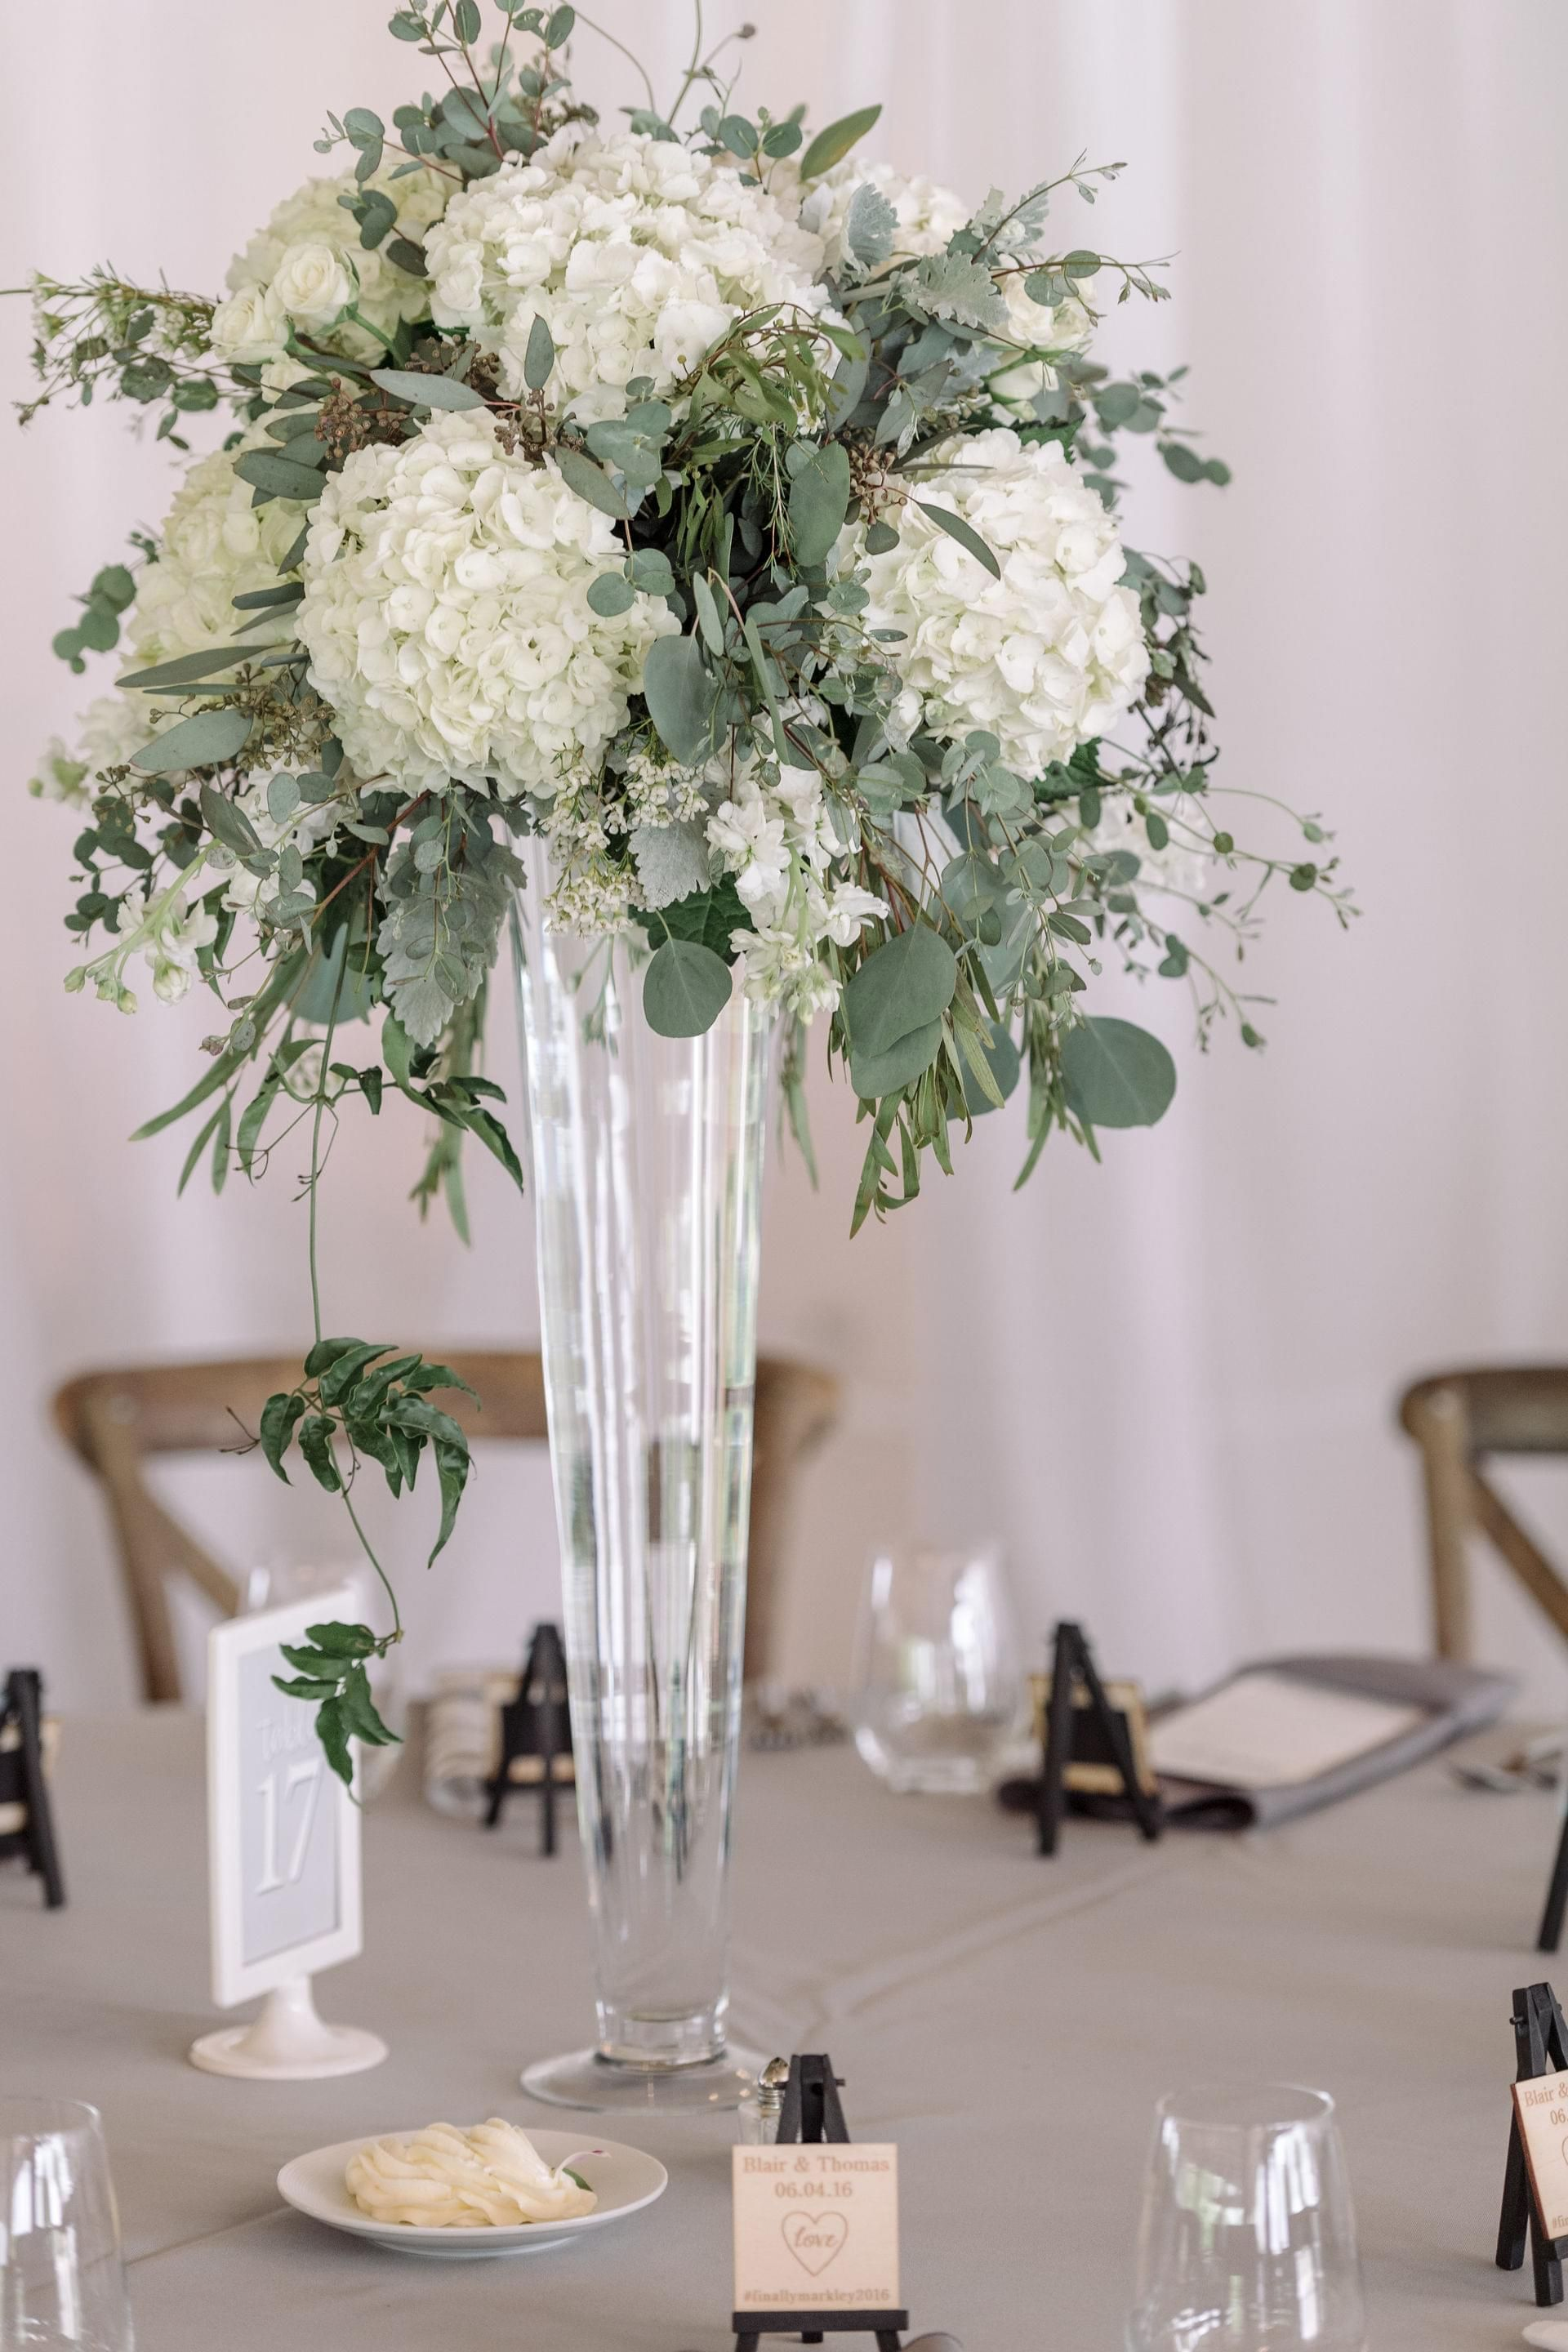 The smarter way to wed tall wedding centerpieces floral floral centerpieces tall wedding centerpieces white and green wedding centerpieces pin to your reviewsmspy